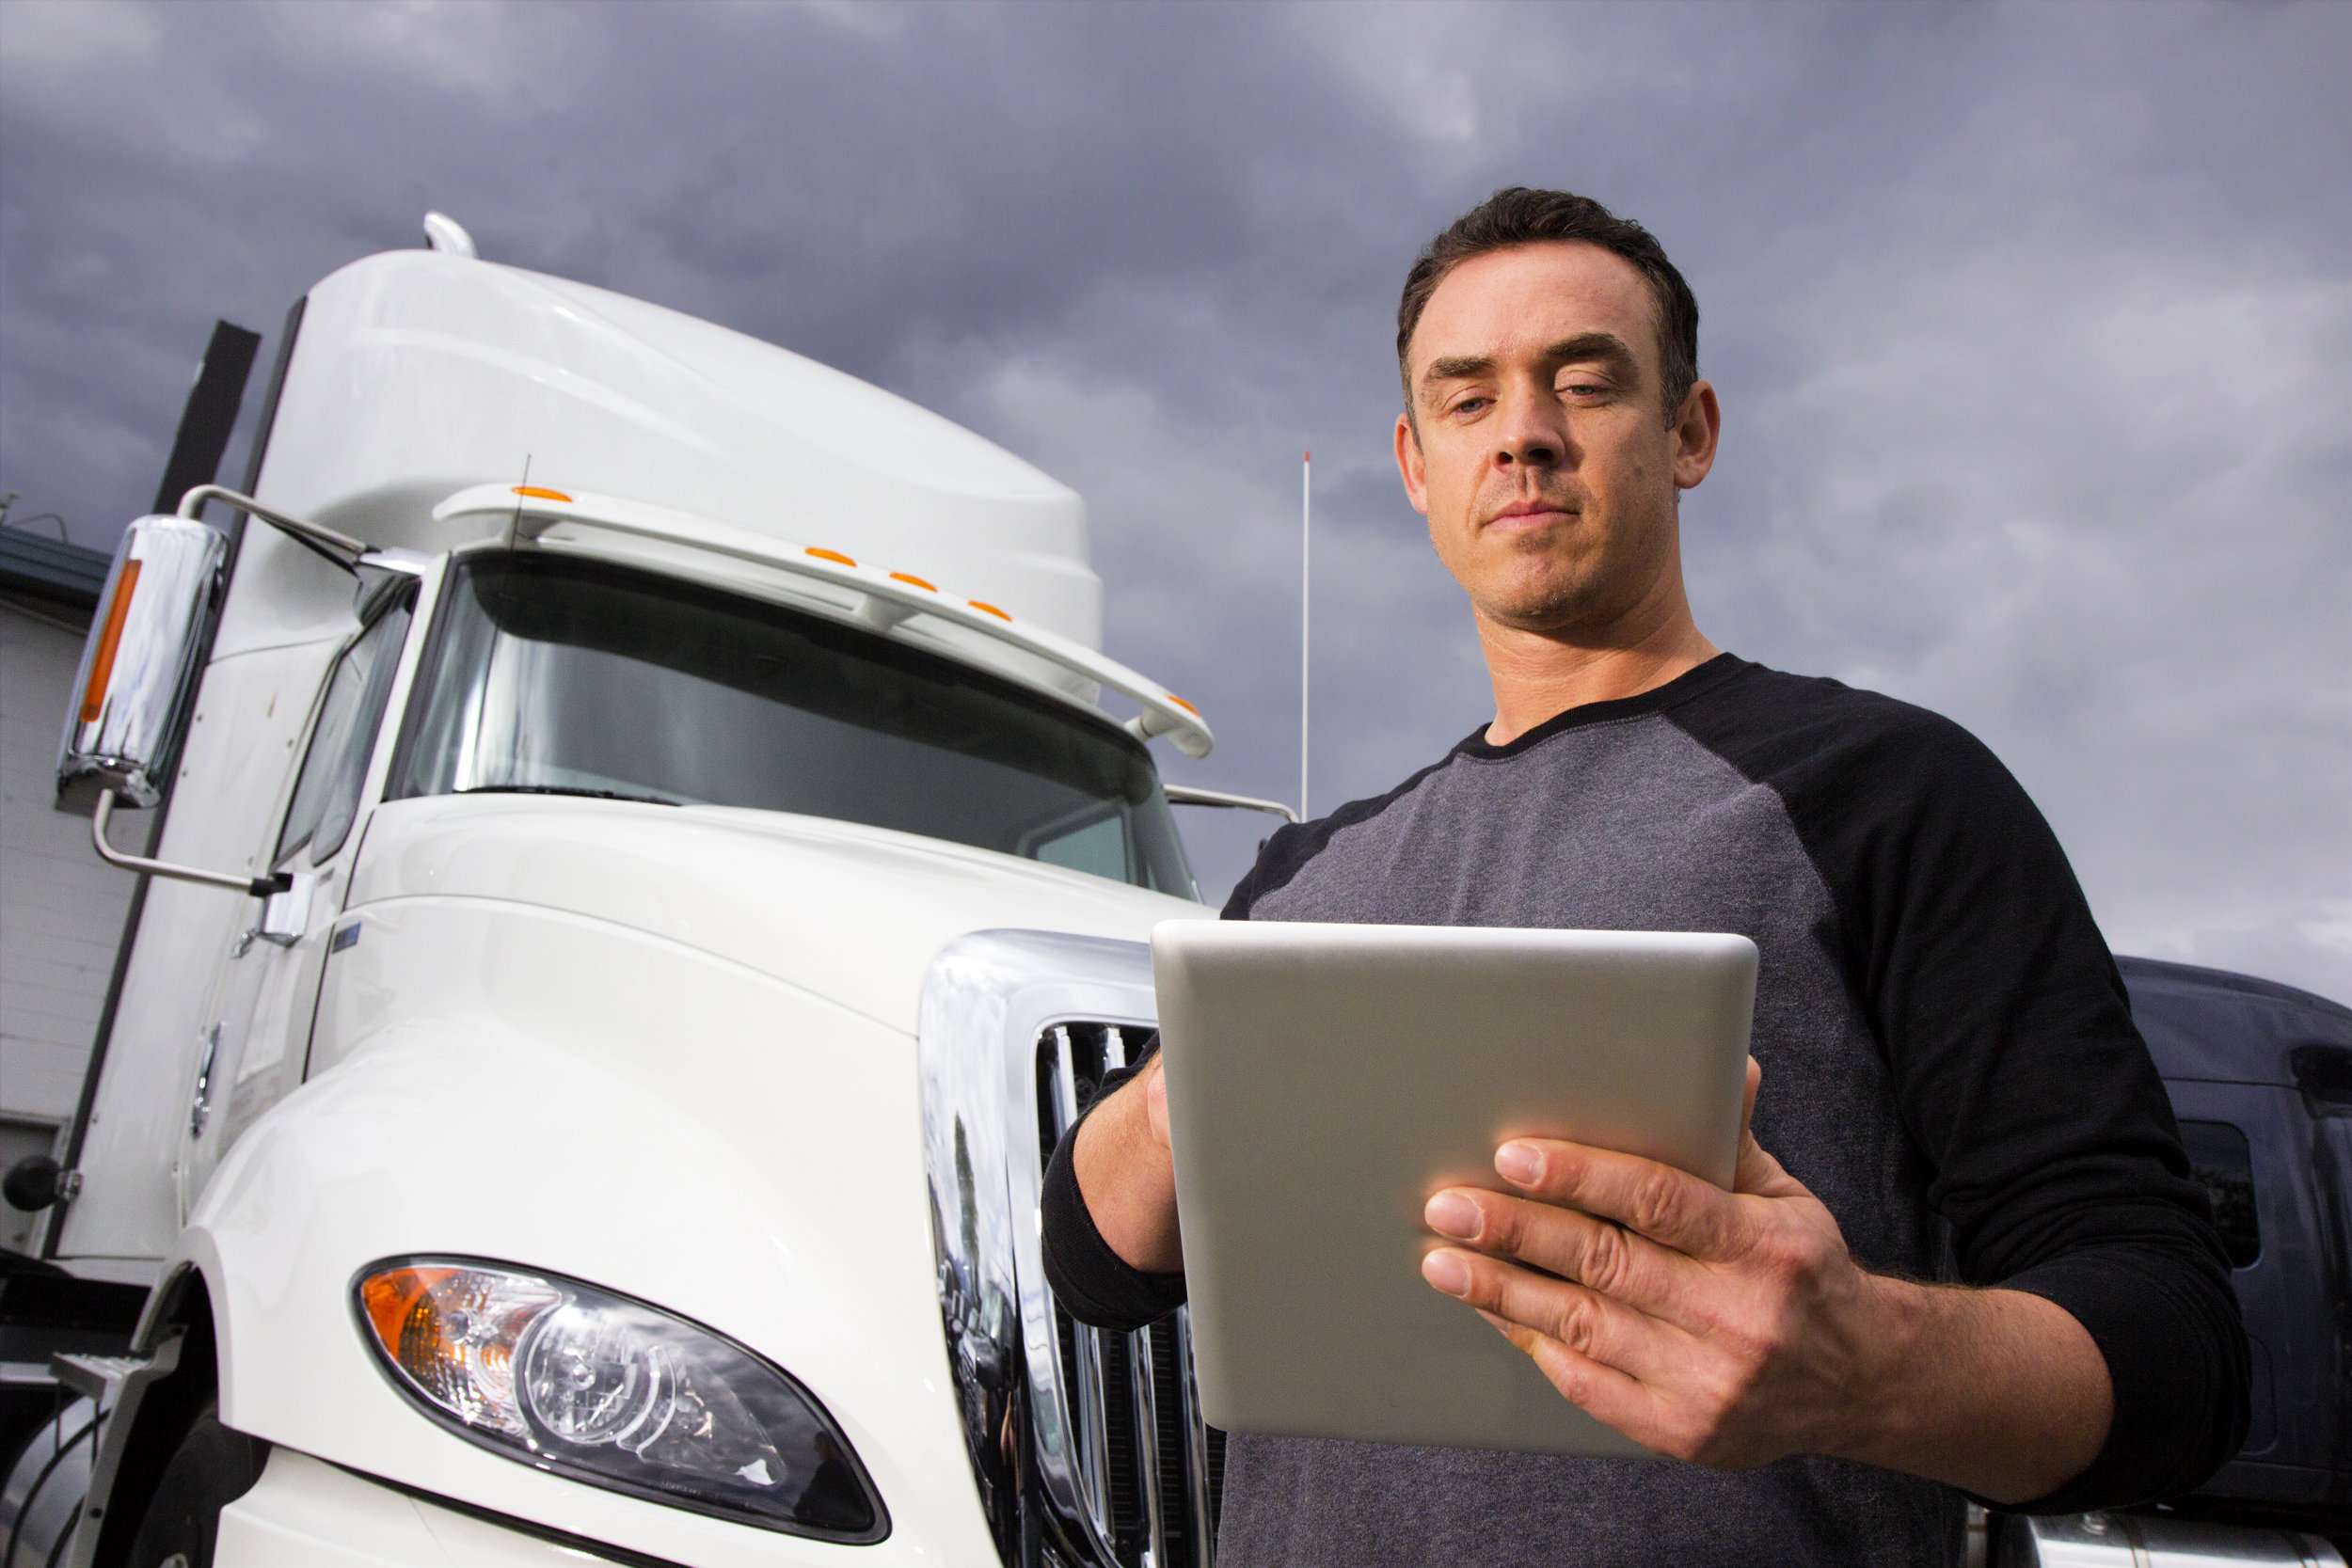 Trucker-Using-a-Tablet-482925583_5184x3456.jpeg